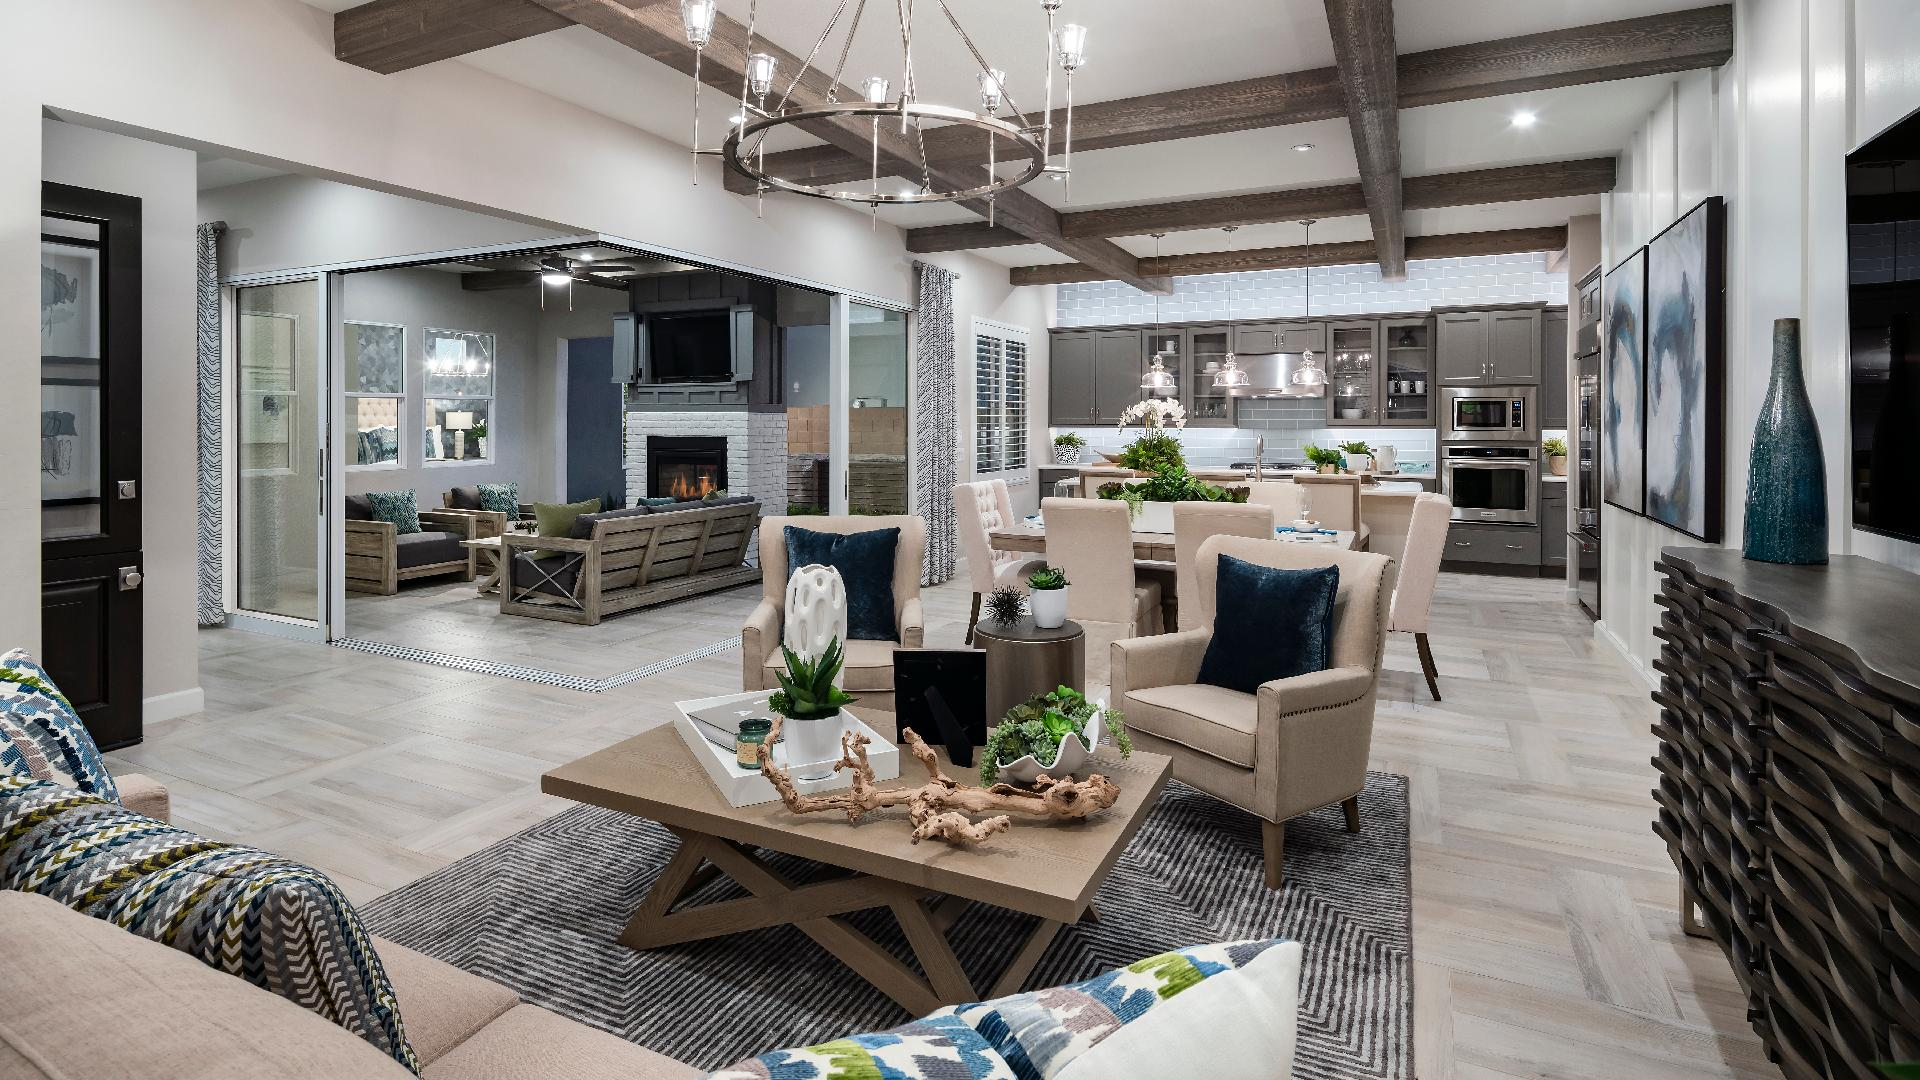 Well-designed floor plans with bright and open main living areas provide ideal space for entertaining